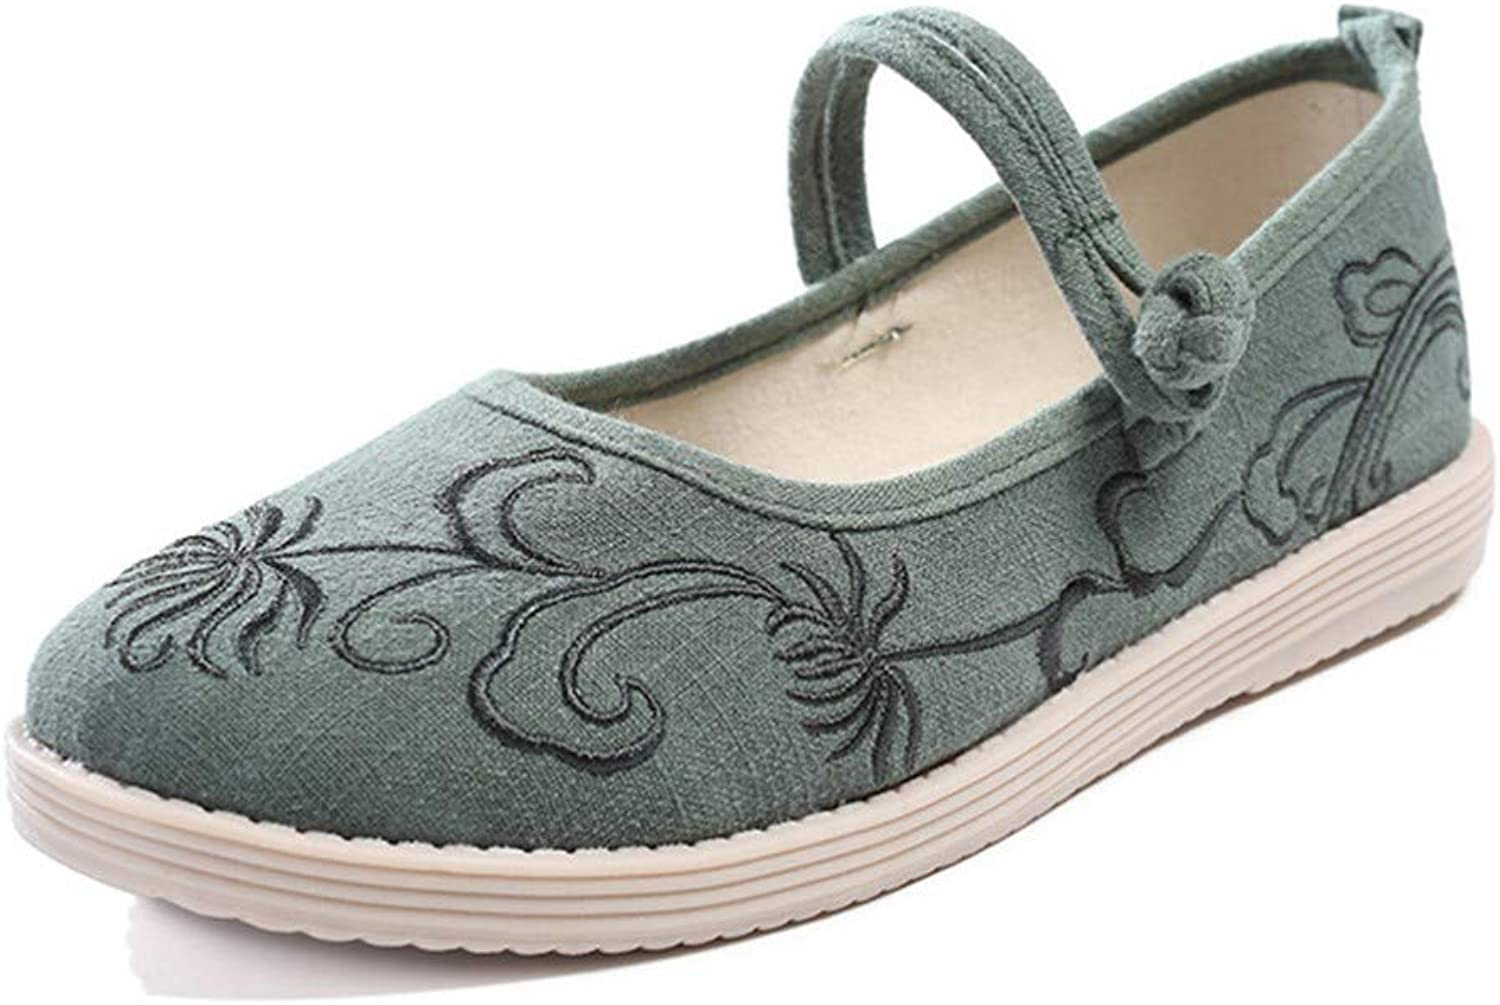 Cloth shoes, Embroidered shoes, Mother shoes, Women's shoes, Dancing shoes-YU&Xin